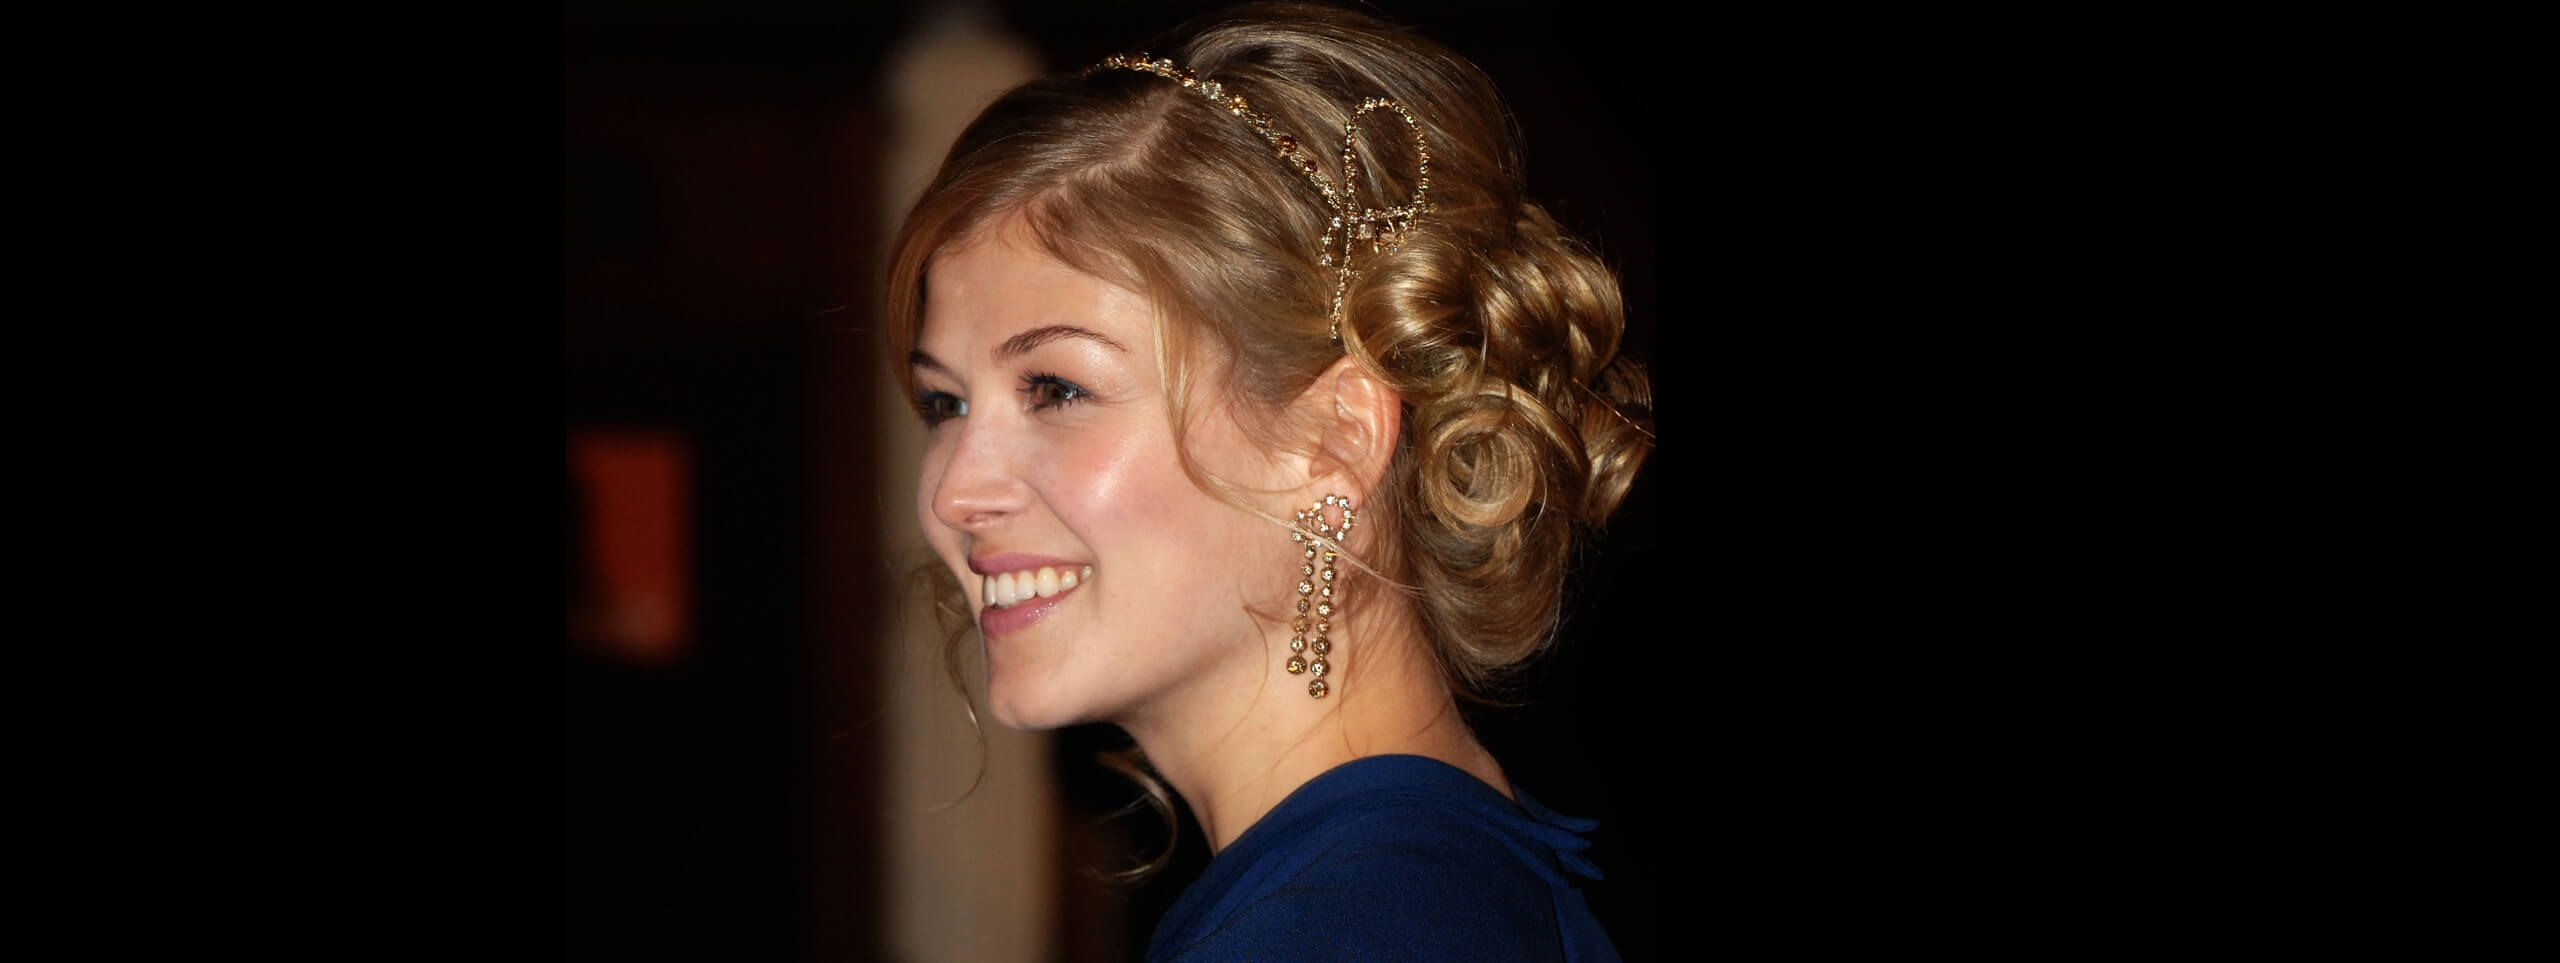 Actress with jewelled hairstyle